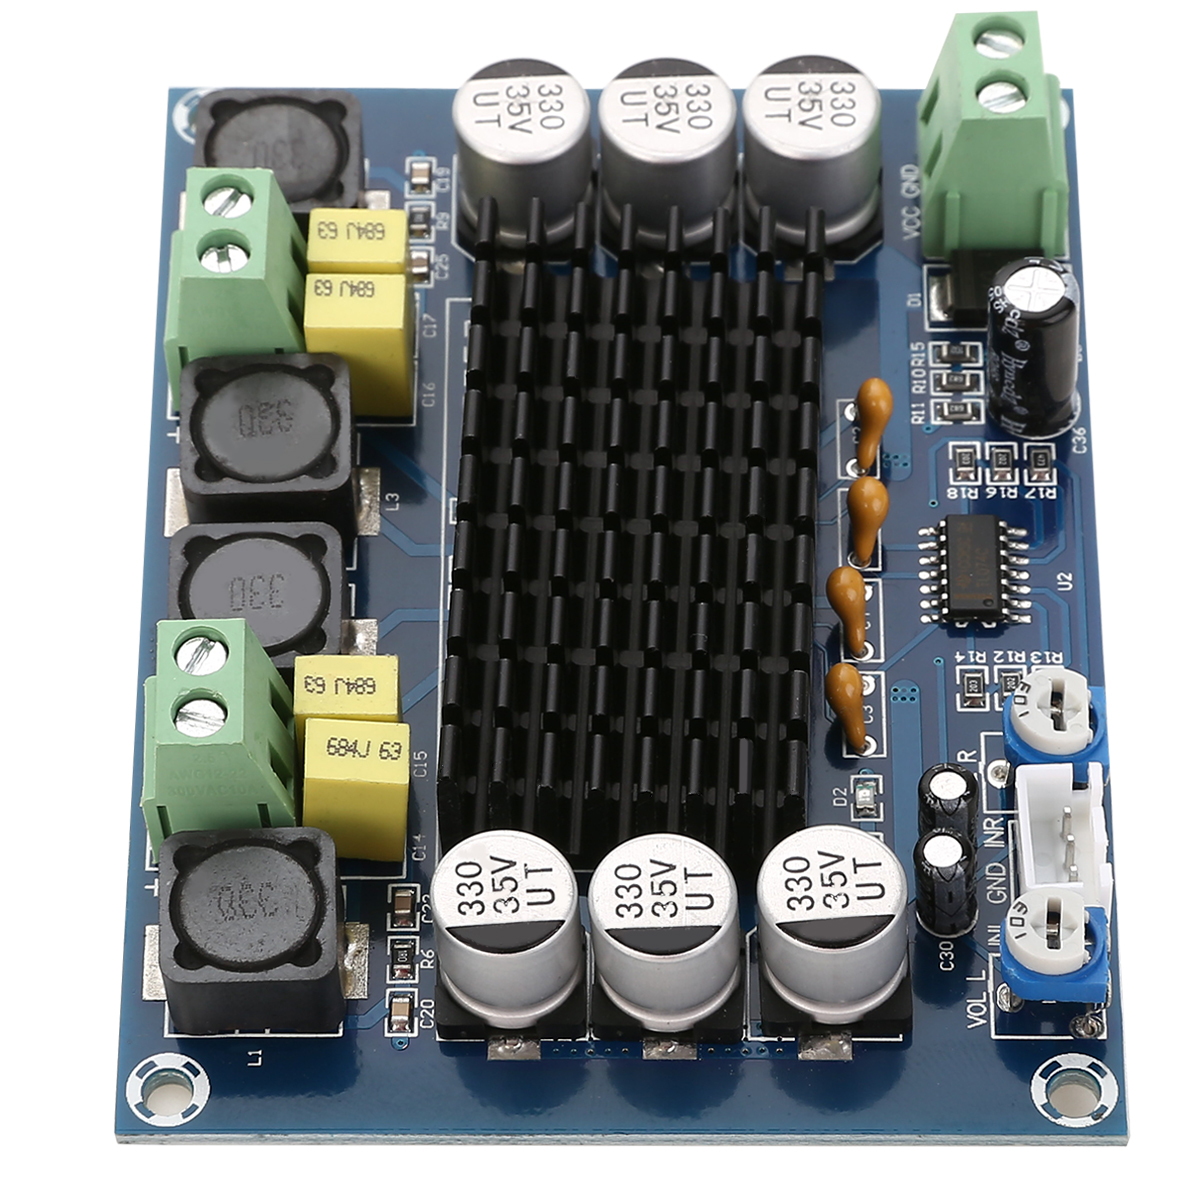 TPA3116 Digital Amplifier Board D2 120W 120W Dual Channel Stereo Speaker AMP Boards For Audio DC12 26V Mayitr in Headphone Amplifier from Consumer Electronics